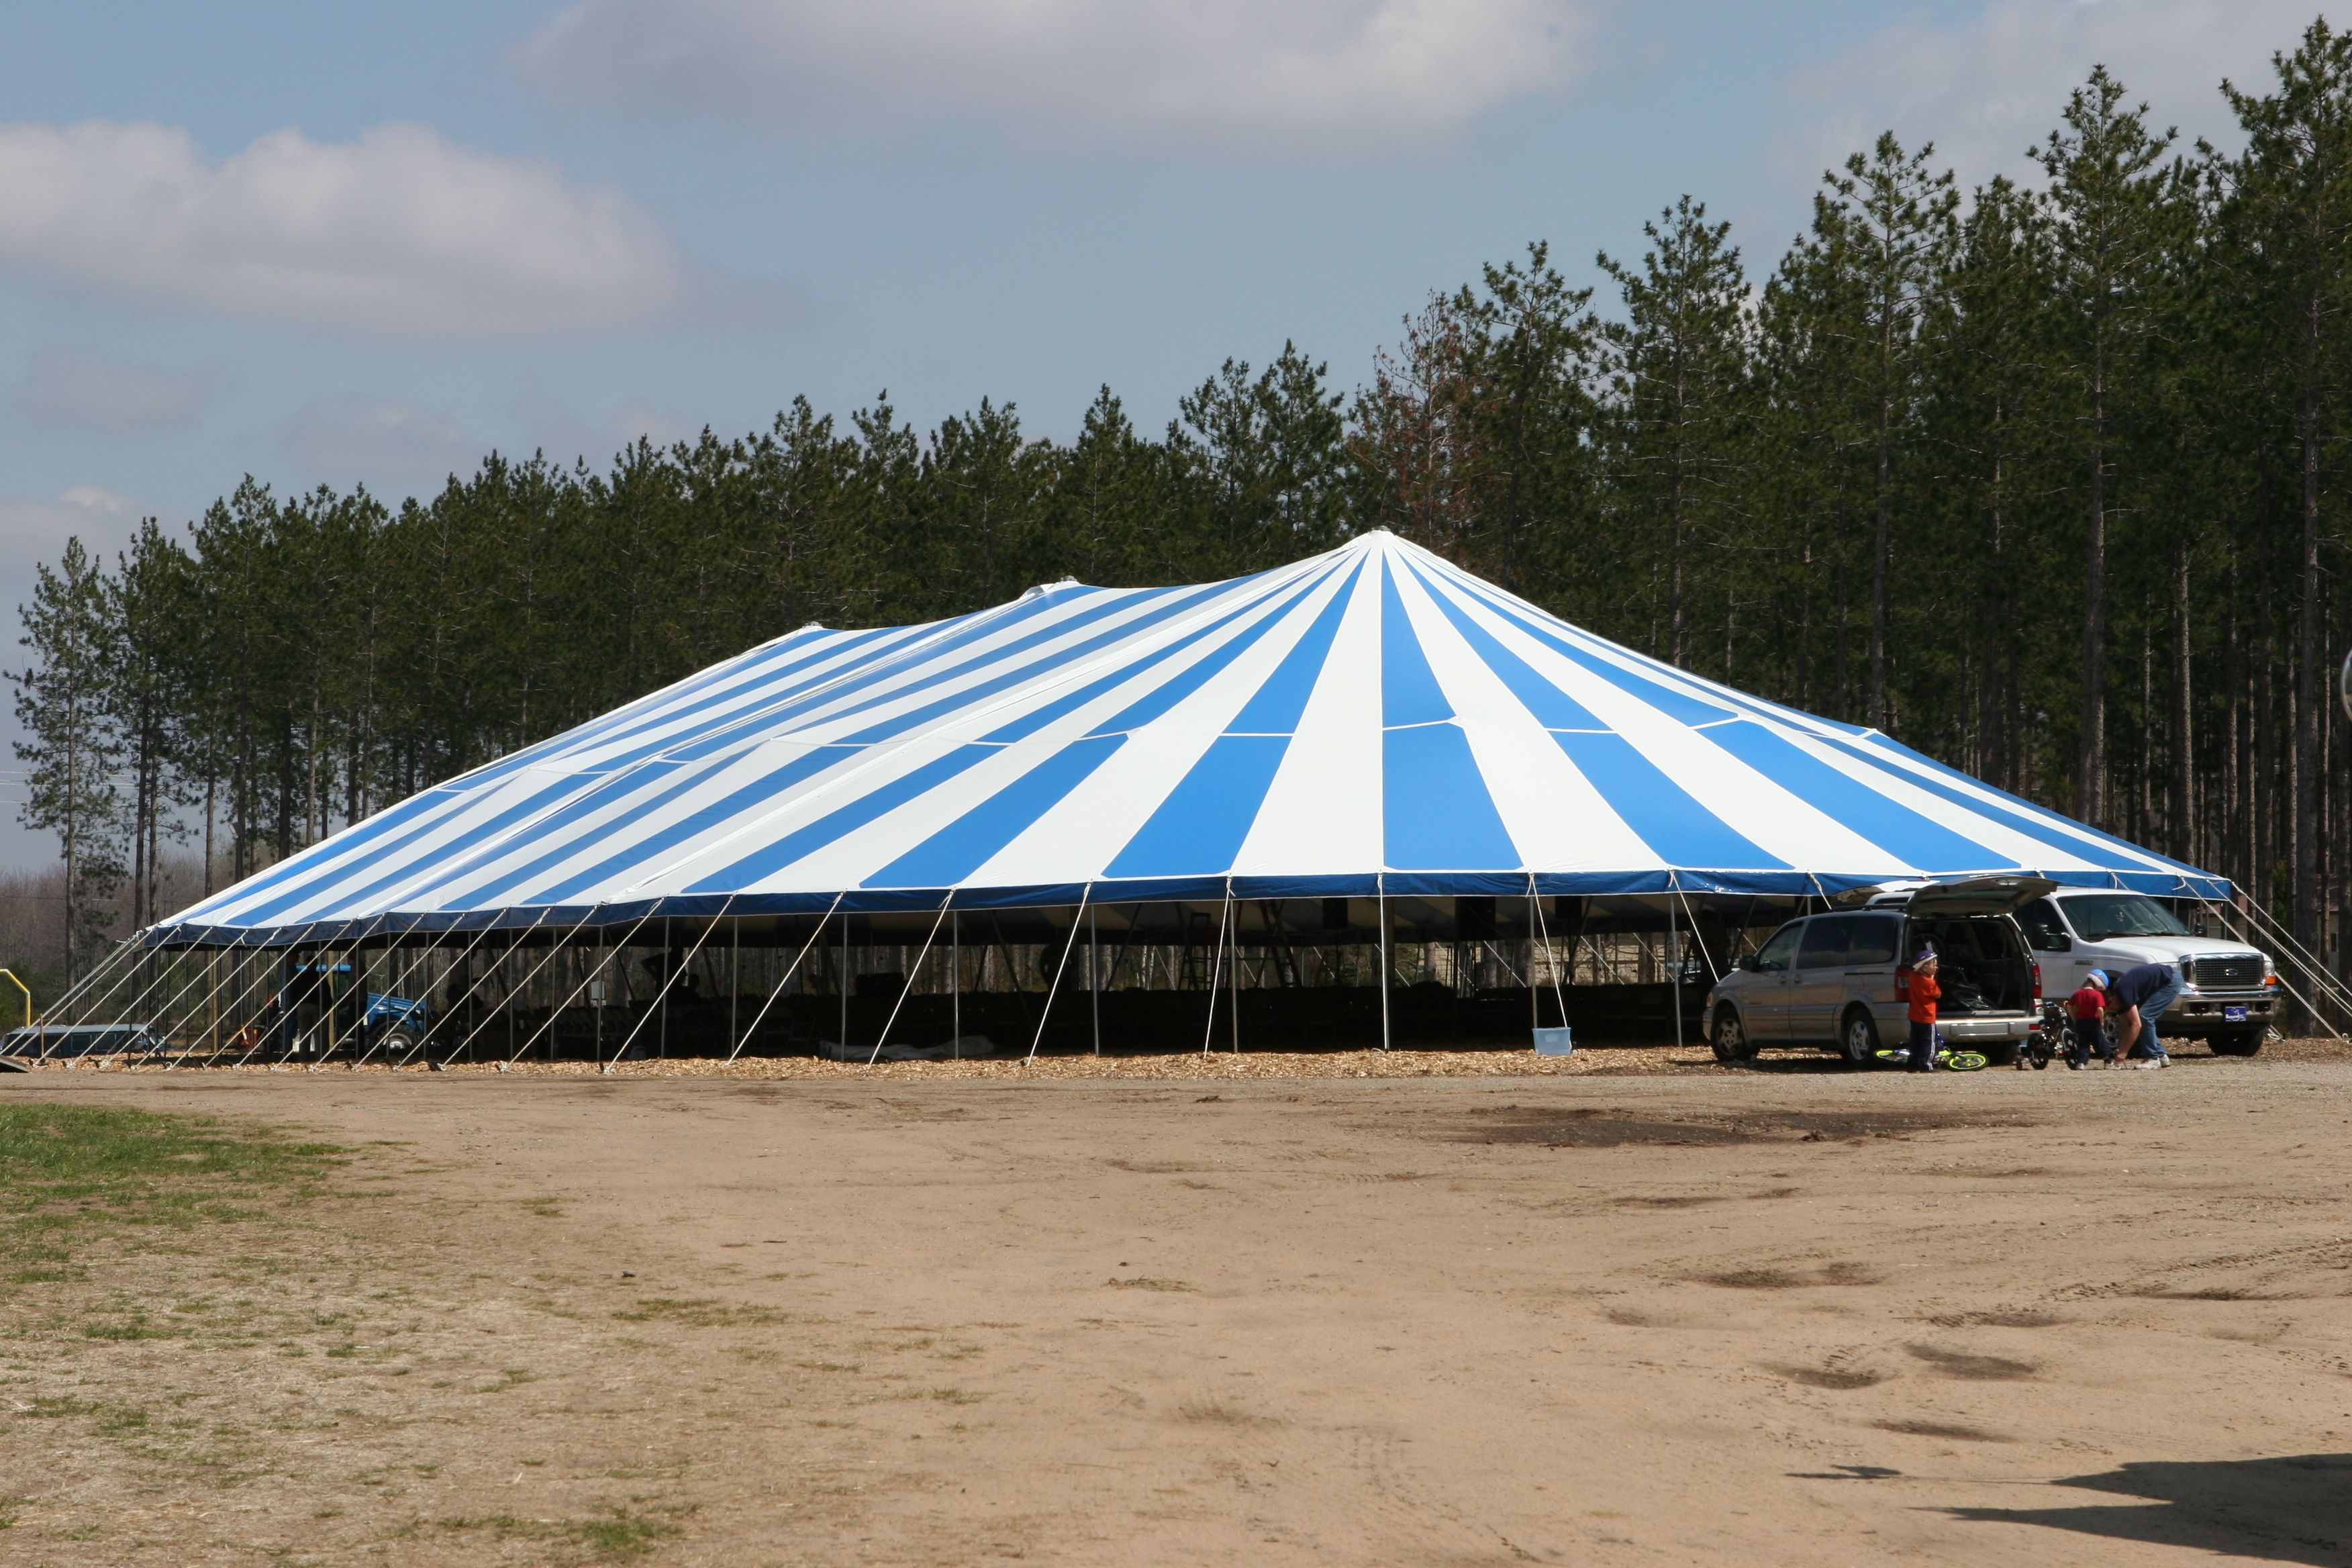 Miami Missionary Tent offers a variety of Pole Tents Event Tents u0026 Commercial Tents for all occasions. Visit your dedicated Tent Manufacturers today! & Tent manufacturer of strong beautiful and long lived pole tents ...